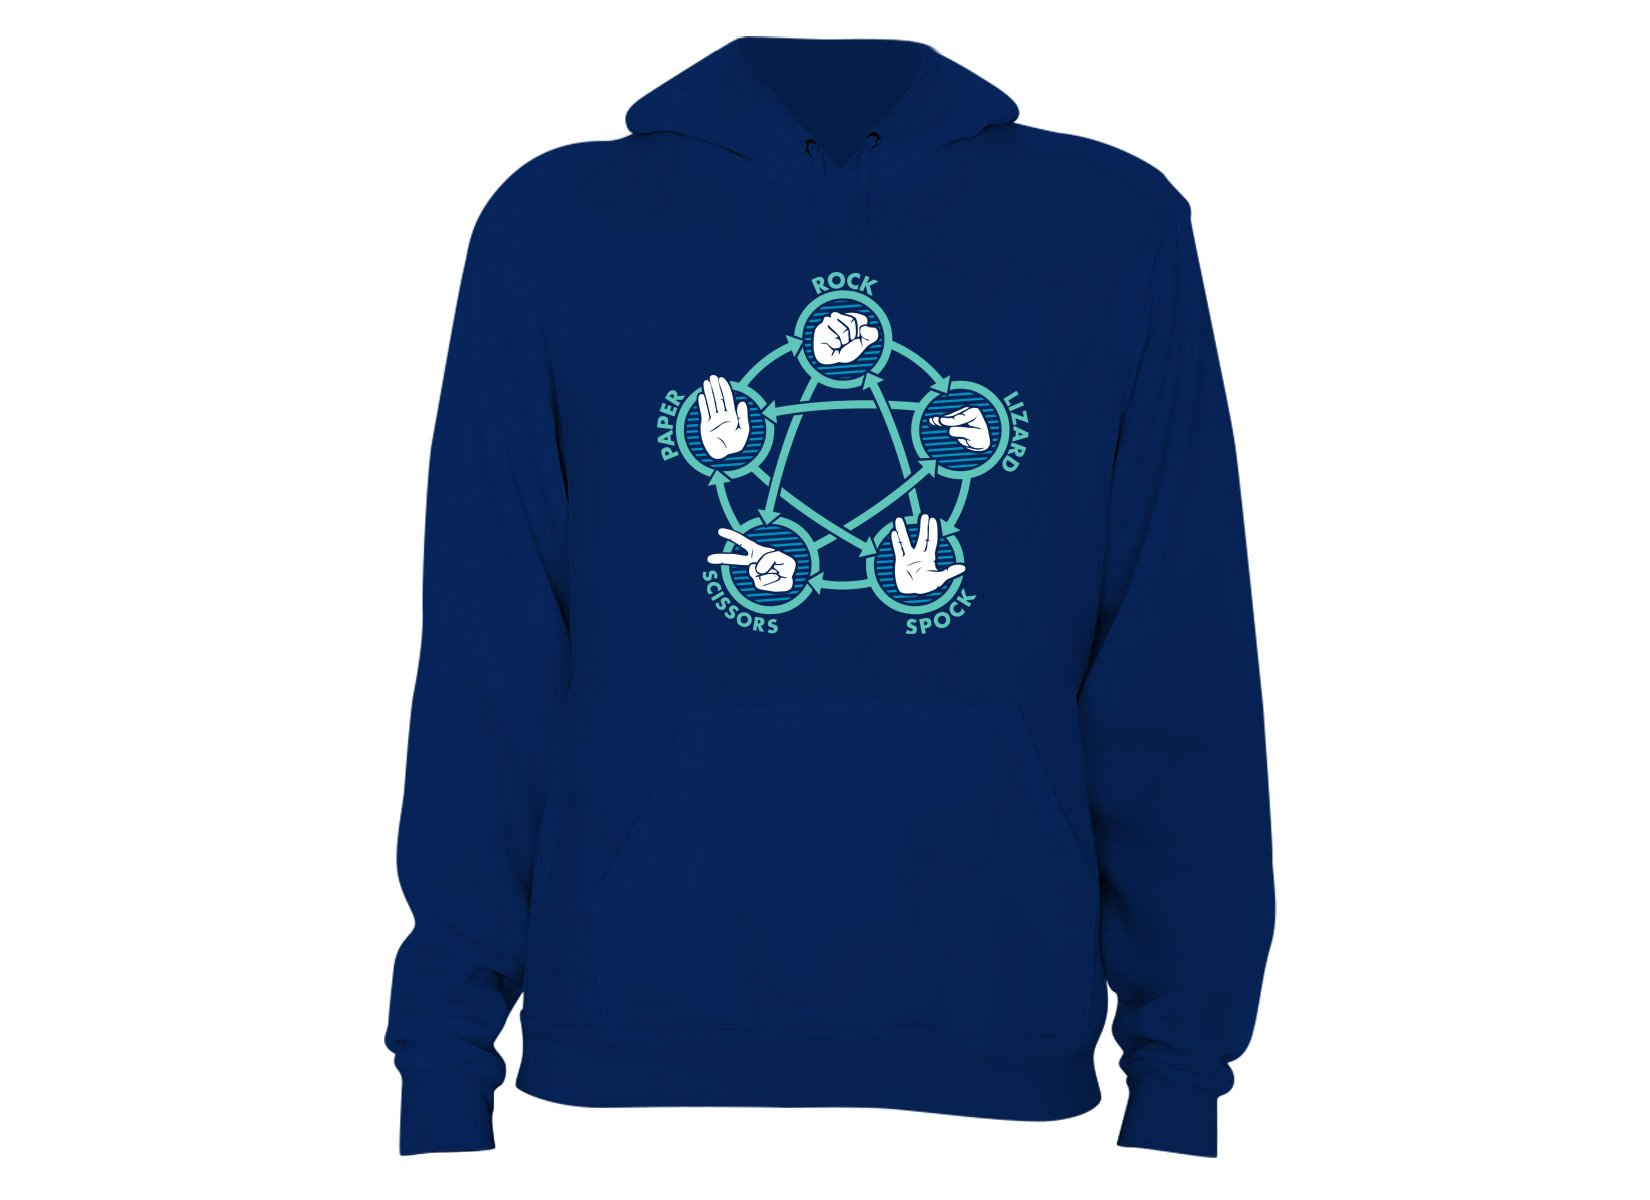 Rock Paper Scissors Lizard Spock on Hoodie